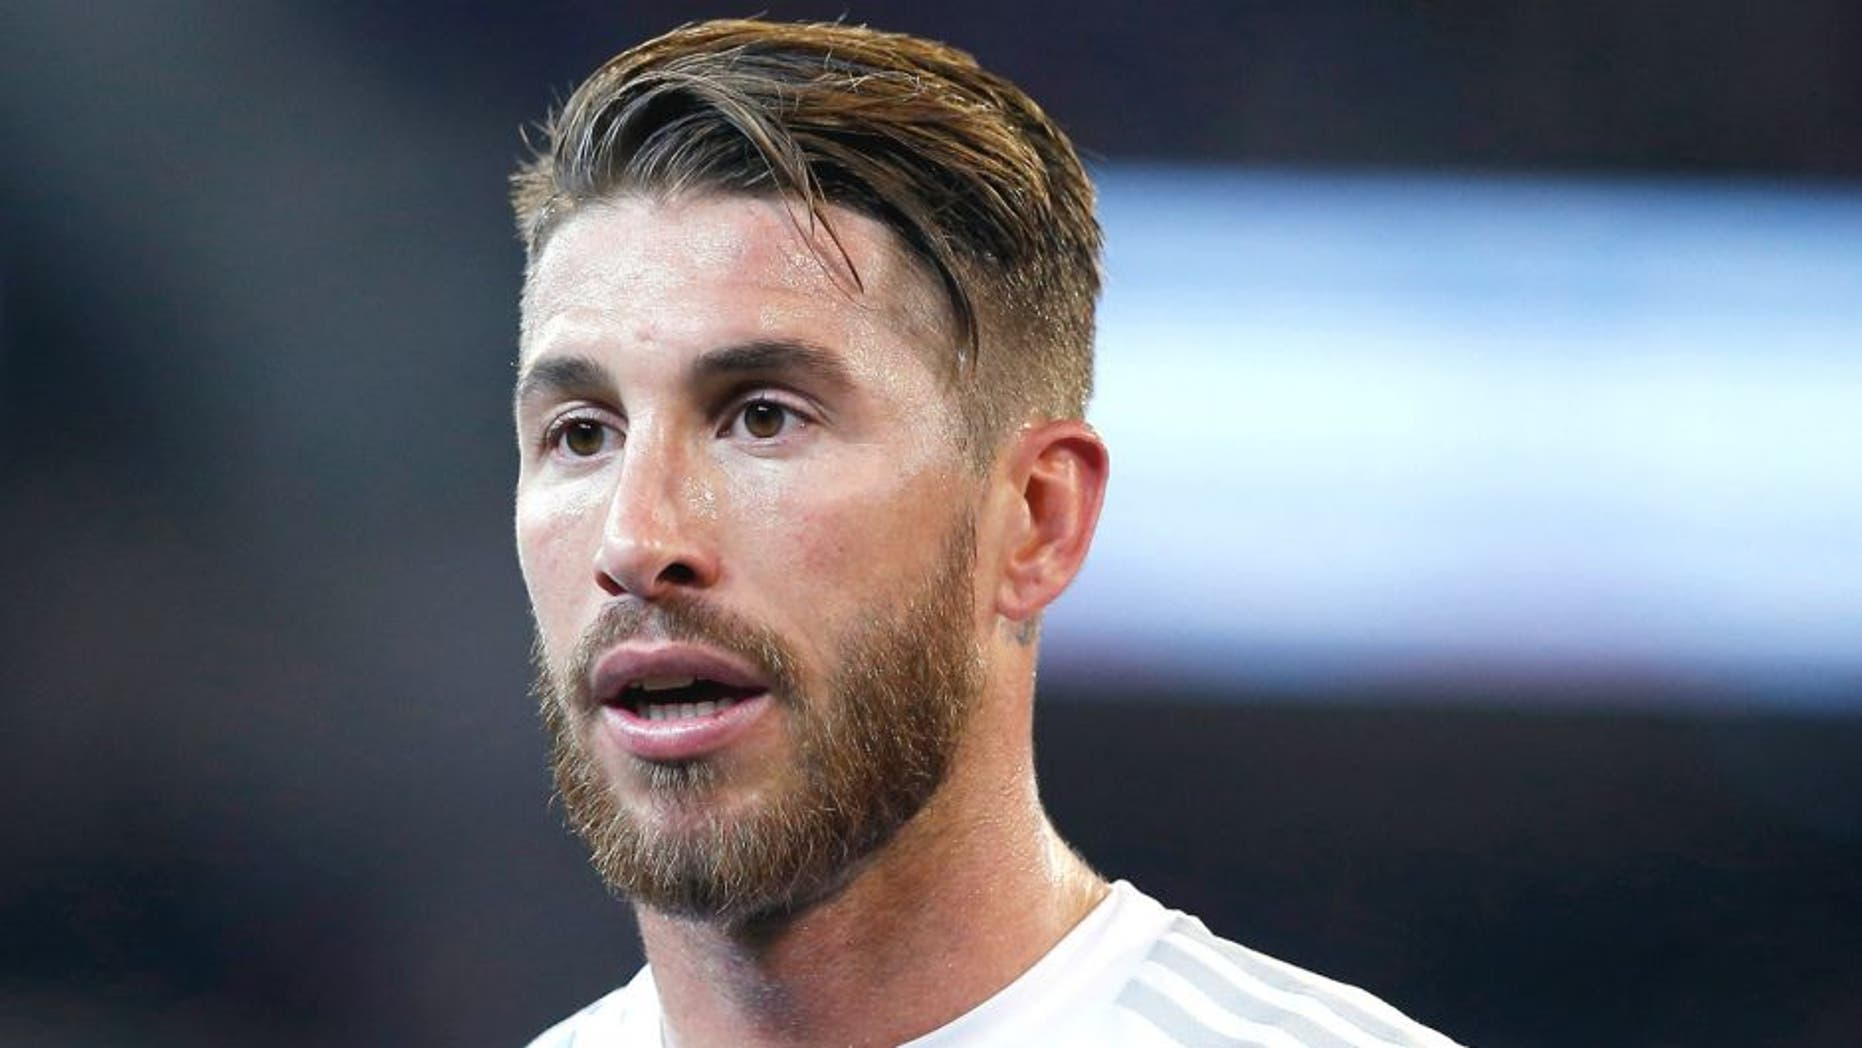 MELBURNE, AUSTRALIA - JULY 18: Sergio Ramos of Real Madrid C.F looks on during the international friendly match between Real Madrid and AS Roma at Melbourne Cricket Ground on July 18, 2015 in Melbourne, Australia. (Photo by Helios de la Rubia/Real Madrid via Getty Images)